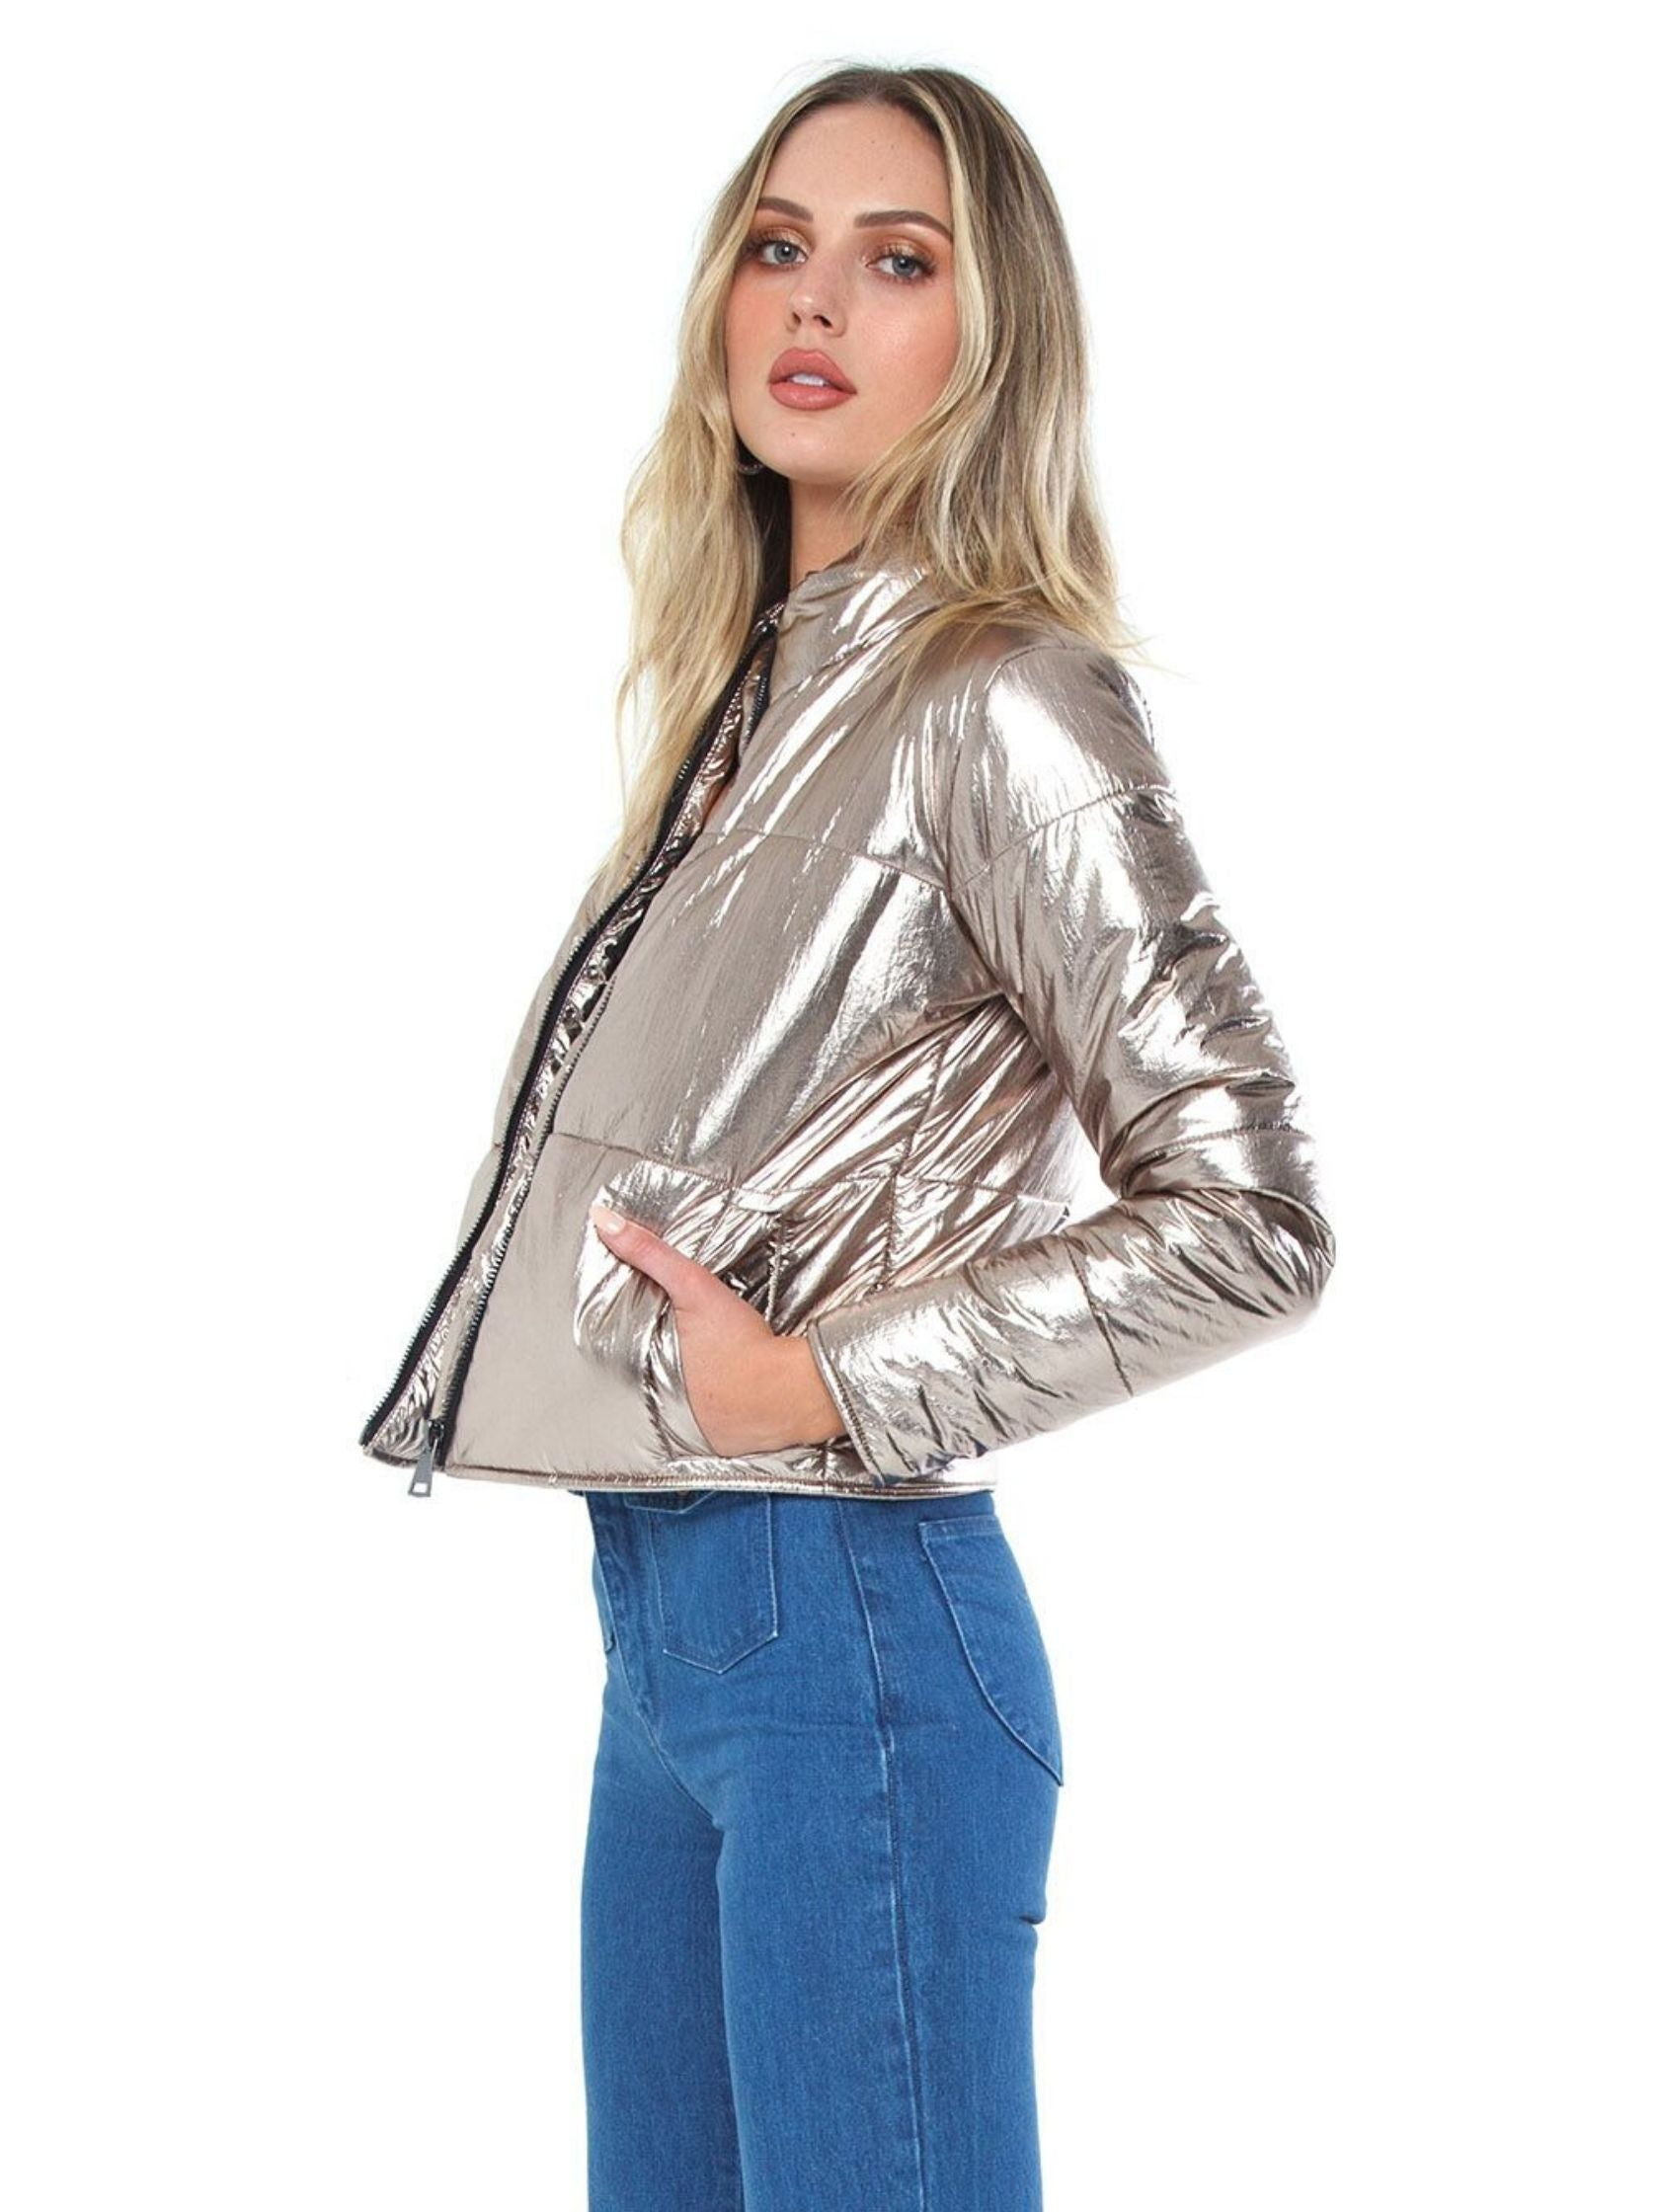 Women wearing a jacket rental from DAVID LERNER called Bella Metallic Crop Puffer